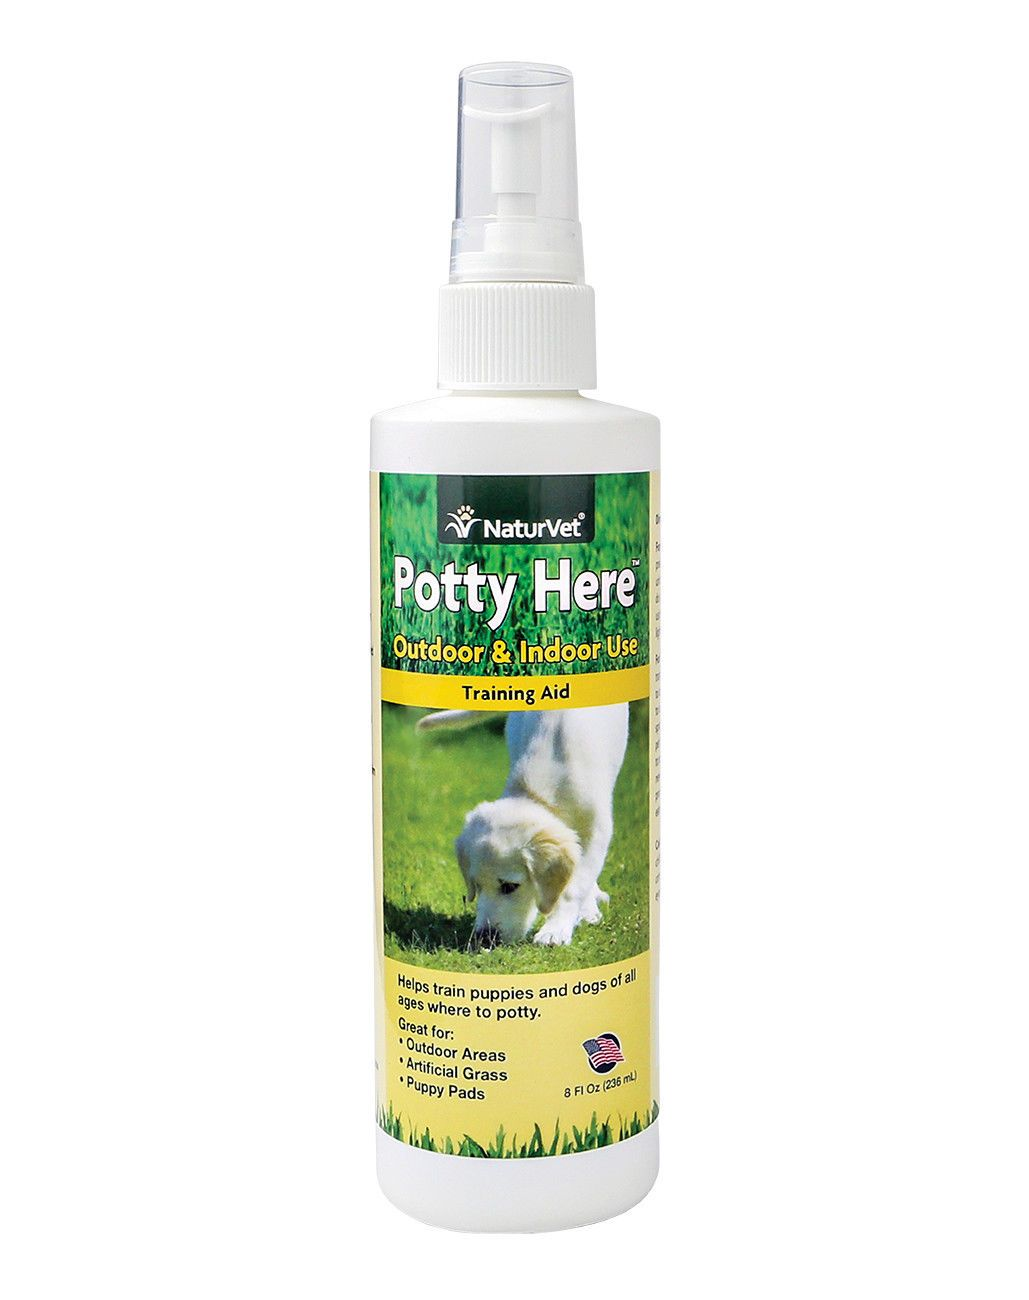 8 72 Naturvet Potty Here Training Aid Dog And Puppy Outdoor Indoor Spray 8 Oz Ebay Home Garden With Images Dog Potty Training Dog Potty Puppy Training